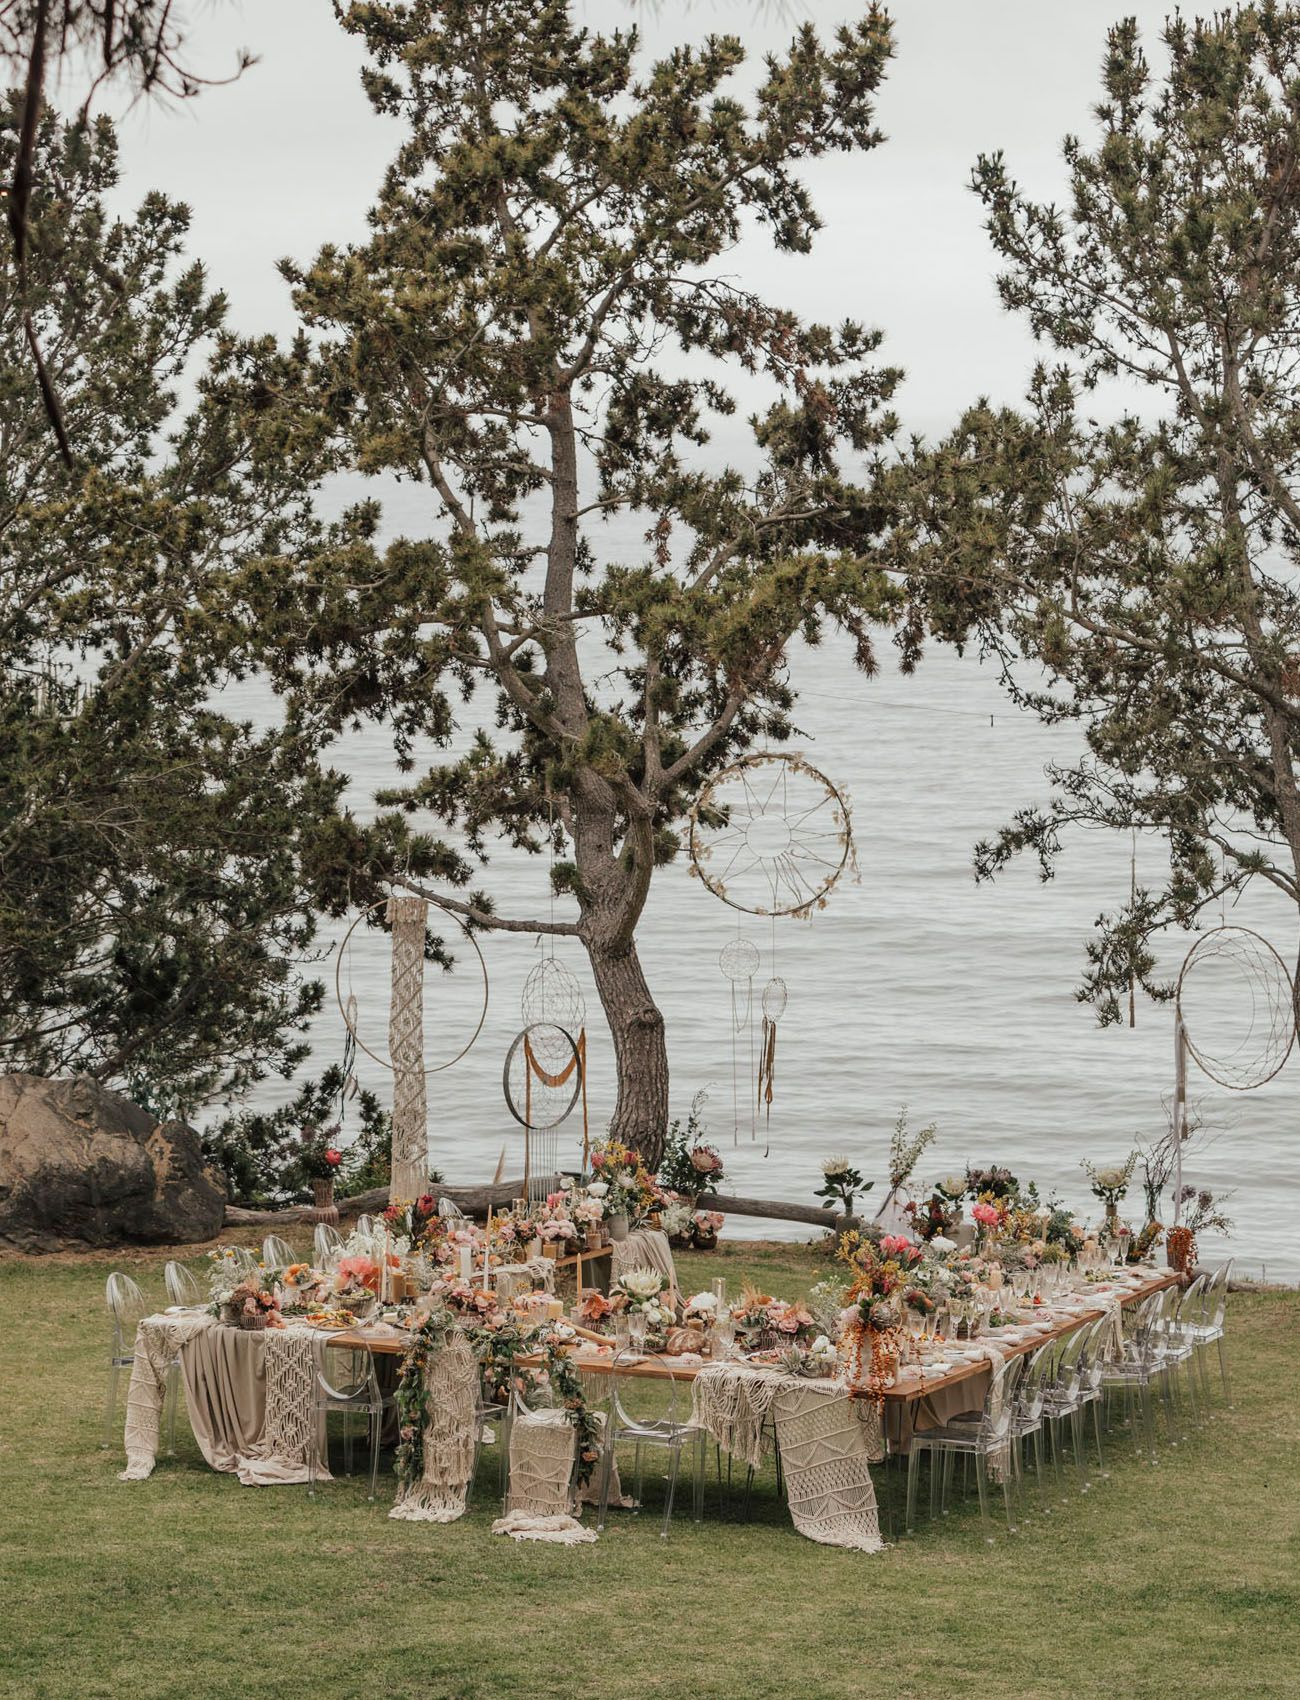 Intimate Big Sur Wedding With A Boho Floral Reception You Have To See Green Wedding Shoes In 2020 Big Sur Wedding Outdoor Wedding Wedding Backyard Reception